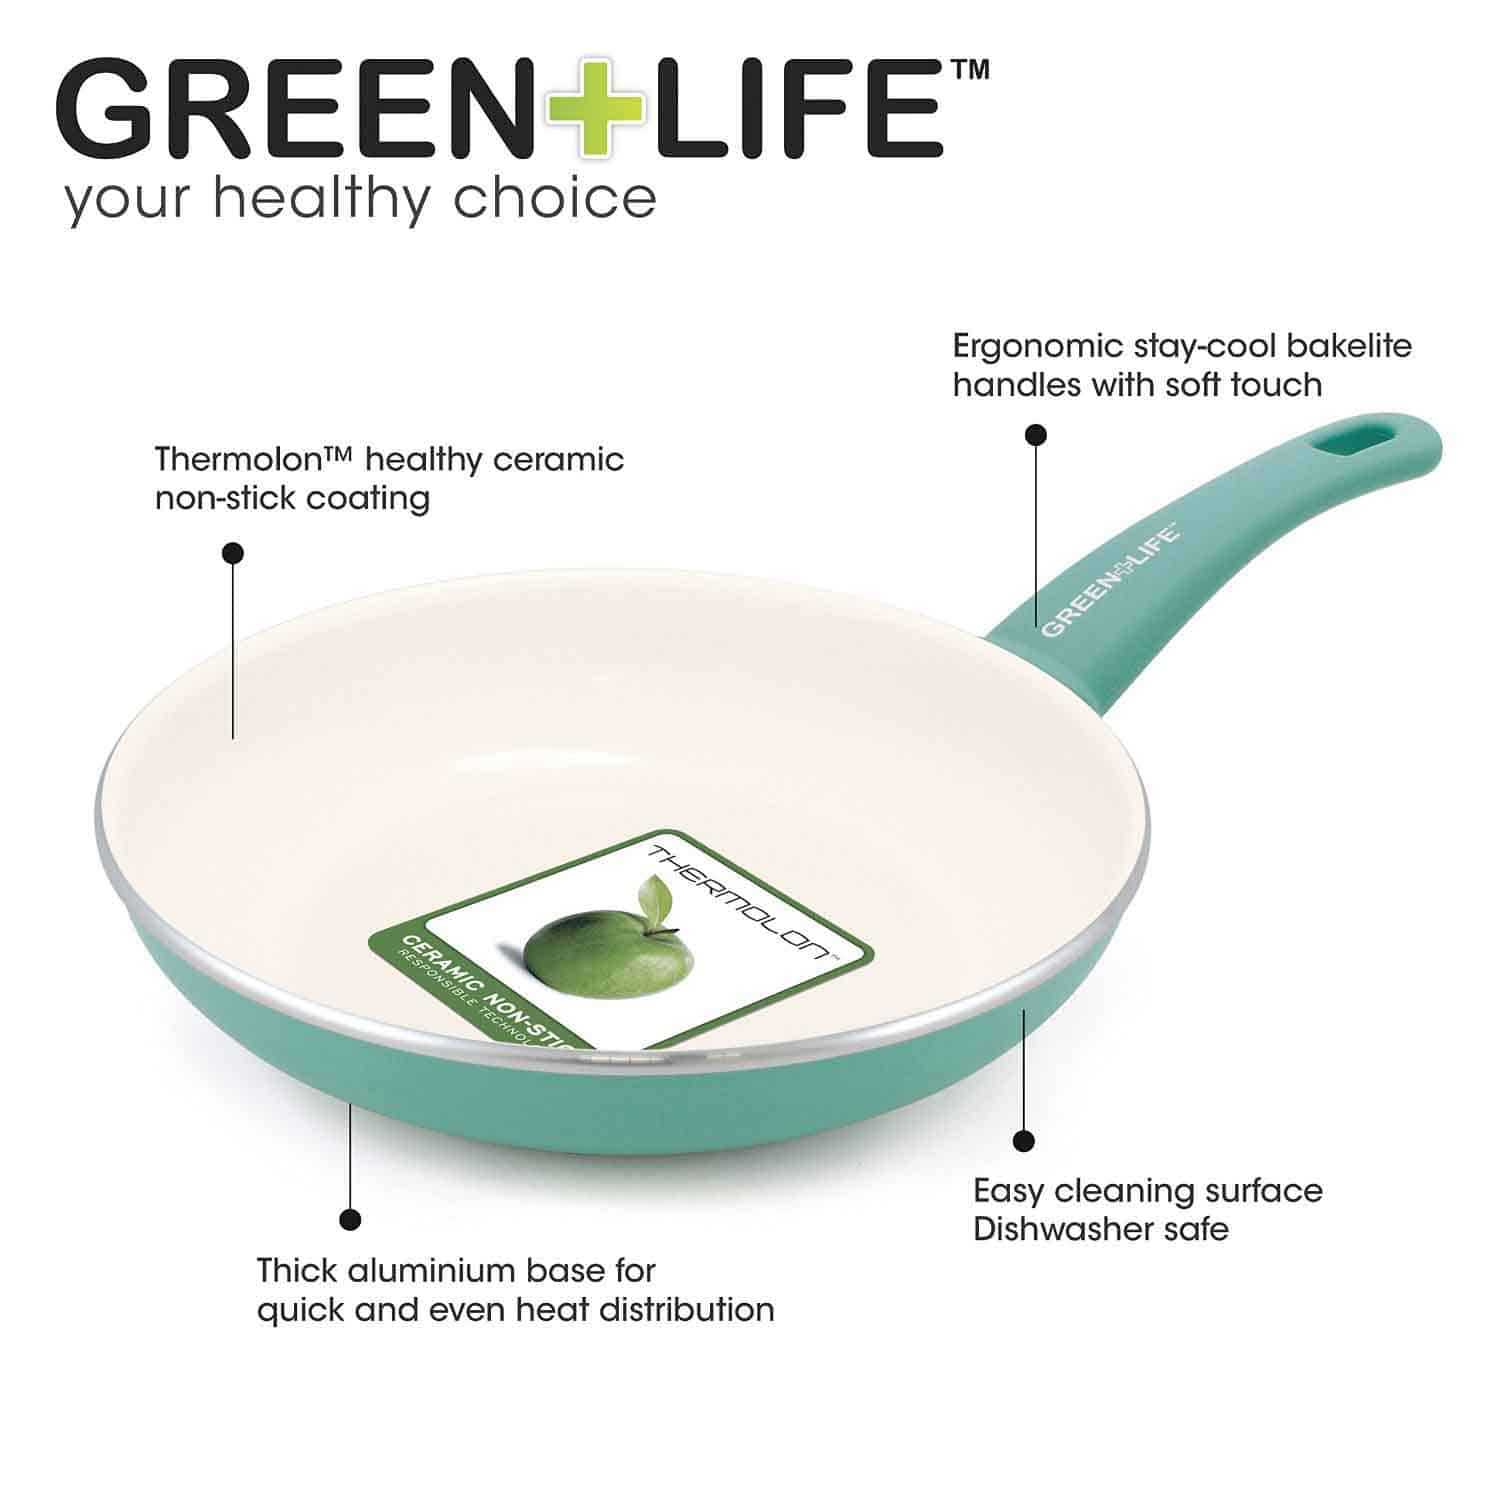 Promotes-Healthier-cooking for best ceramic cookware